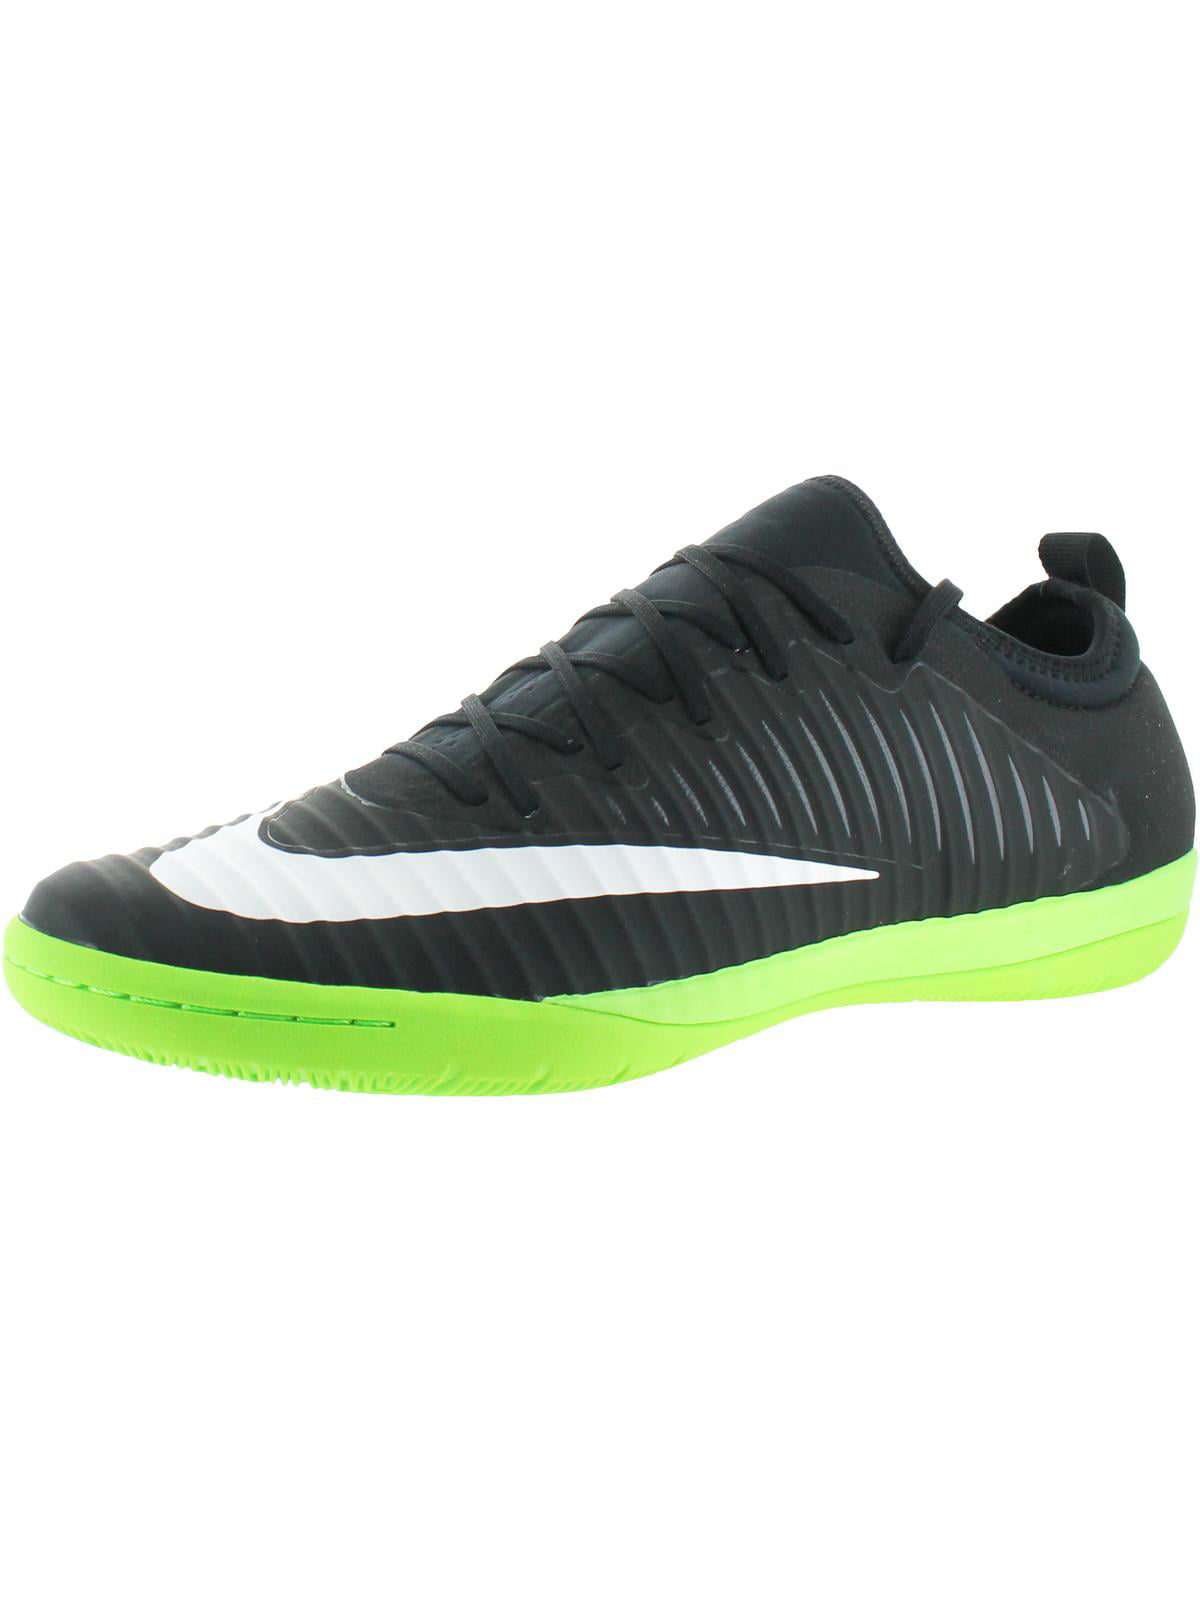 promo code a4a12 f0537 ... new zealand nike mens mercurialx finale 2 ic indoor competitions non  marking soccer shoes walmart b8f32